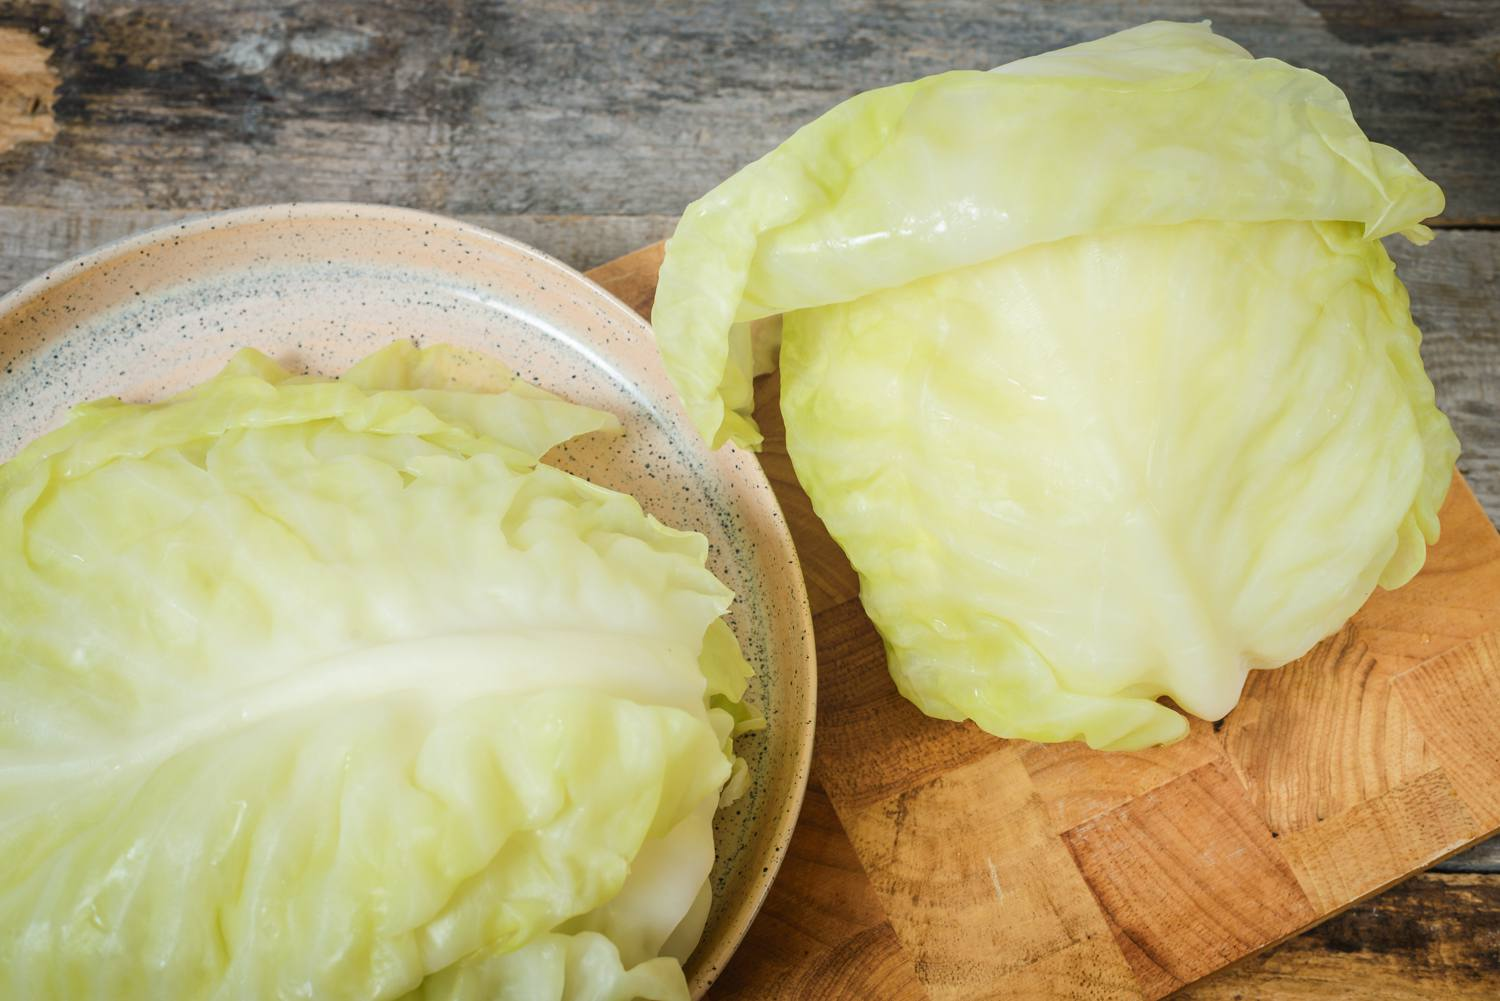 Boiled cabbage with the leaves removed on a cutting board